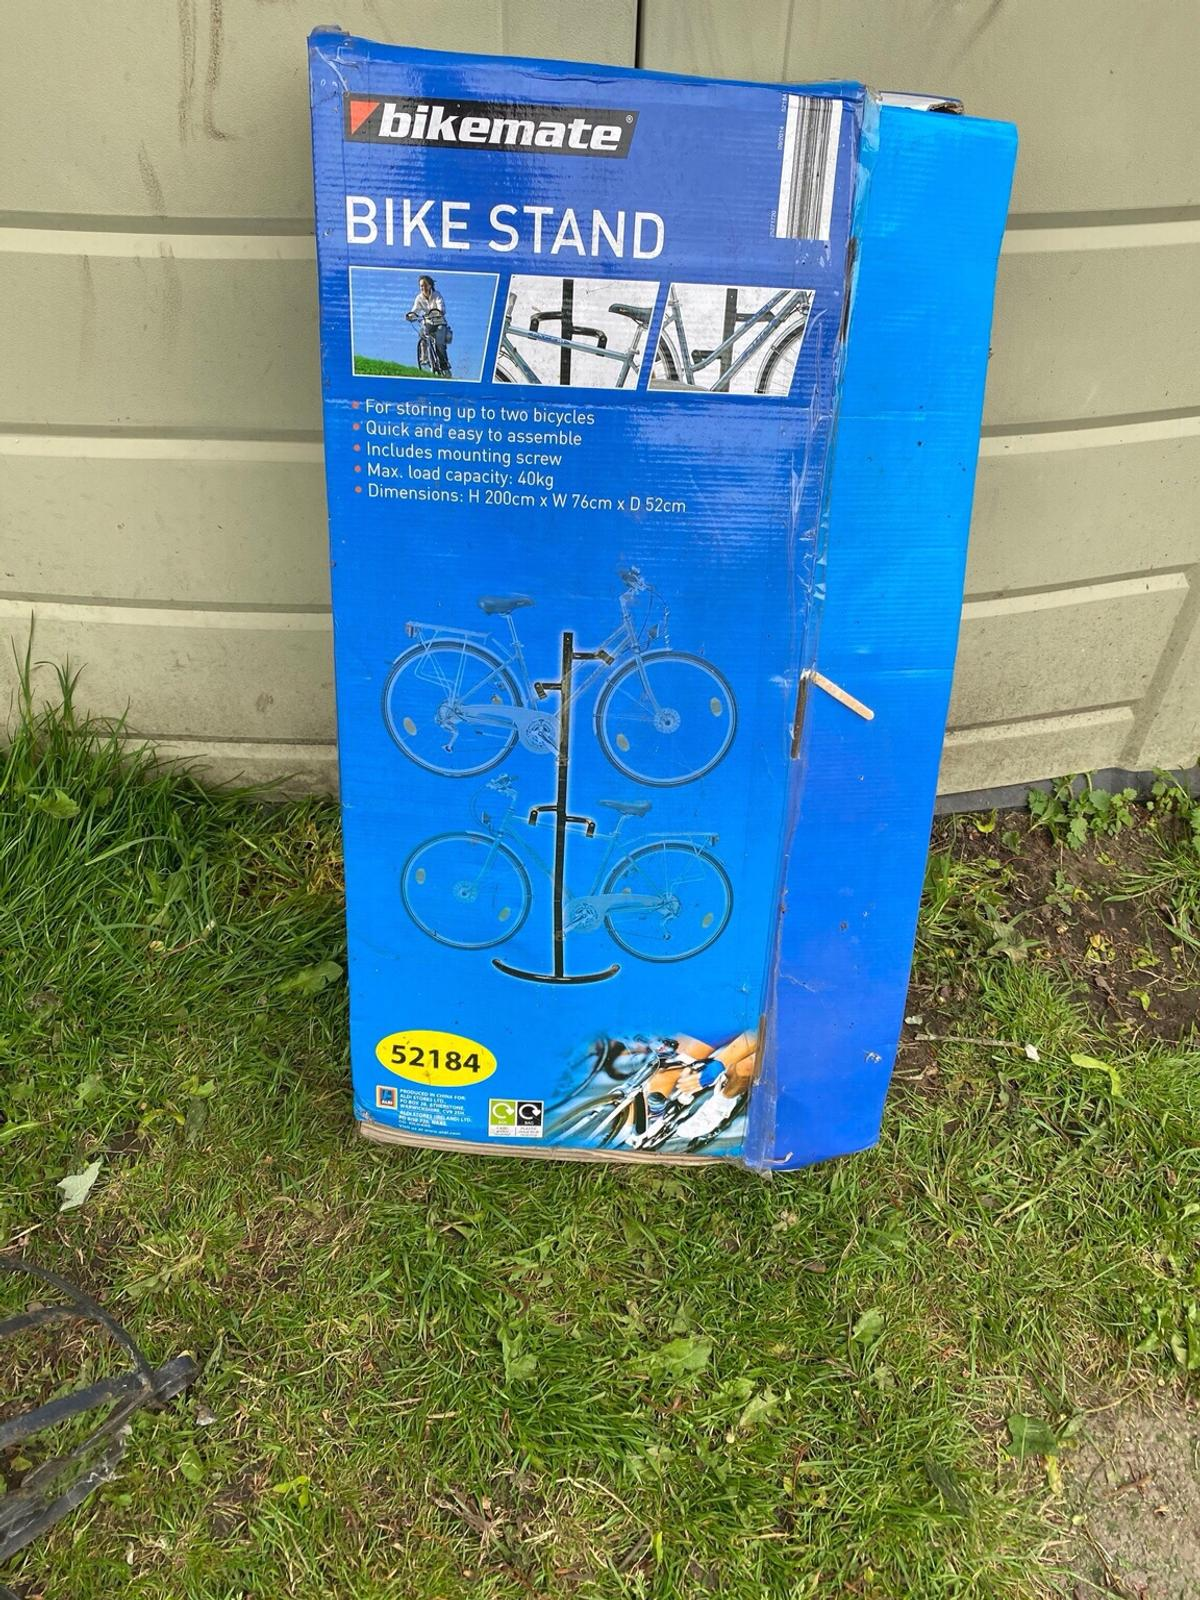 Unused Bike stand for 2 bicycles everything complete ready to assemble. Box is a bit tatty but item is in an unused state .  Thank you for looking at our posting COLLECTION ONLY